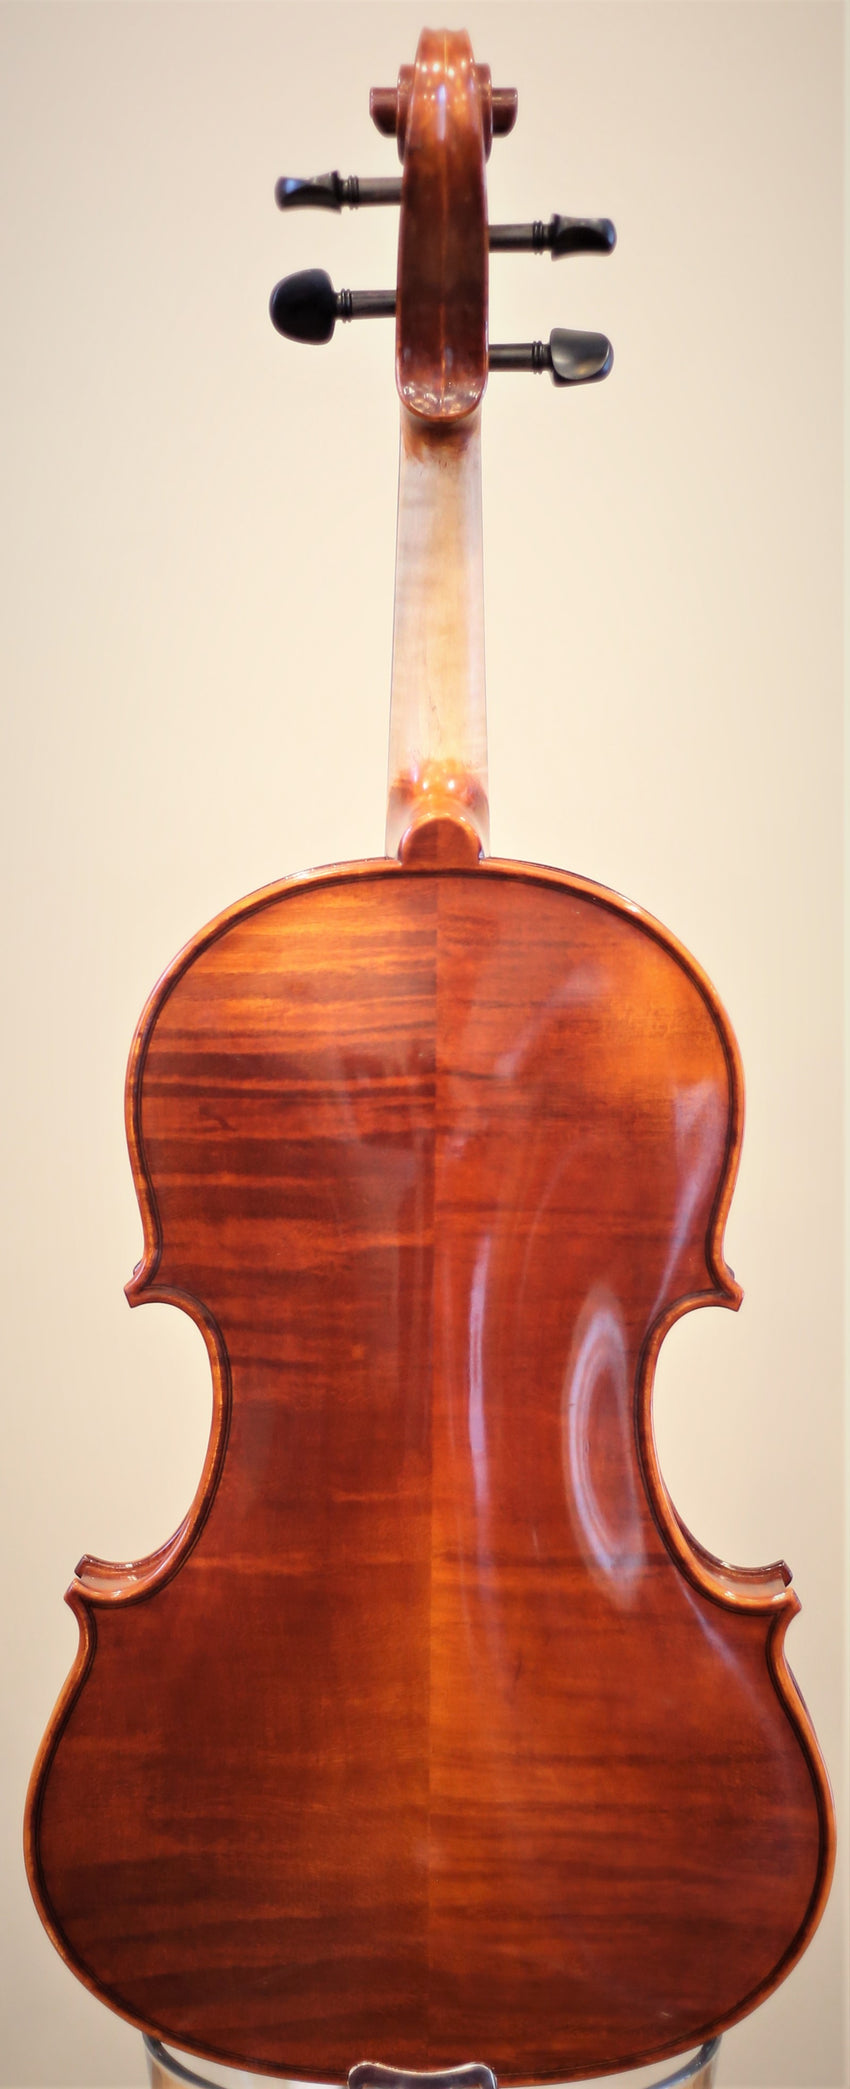 Sam's Strings Viola - Model Vla200